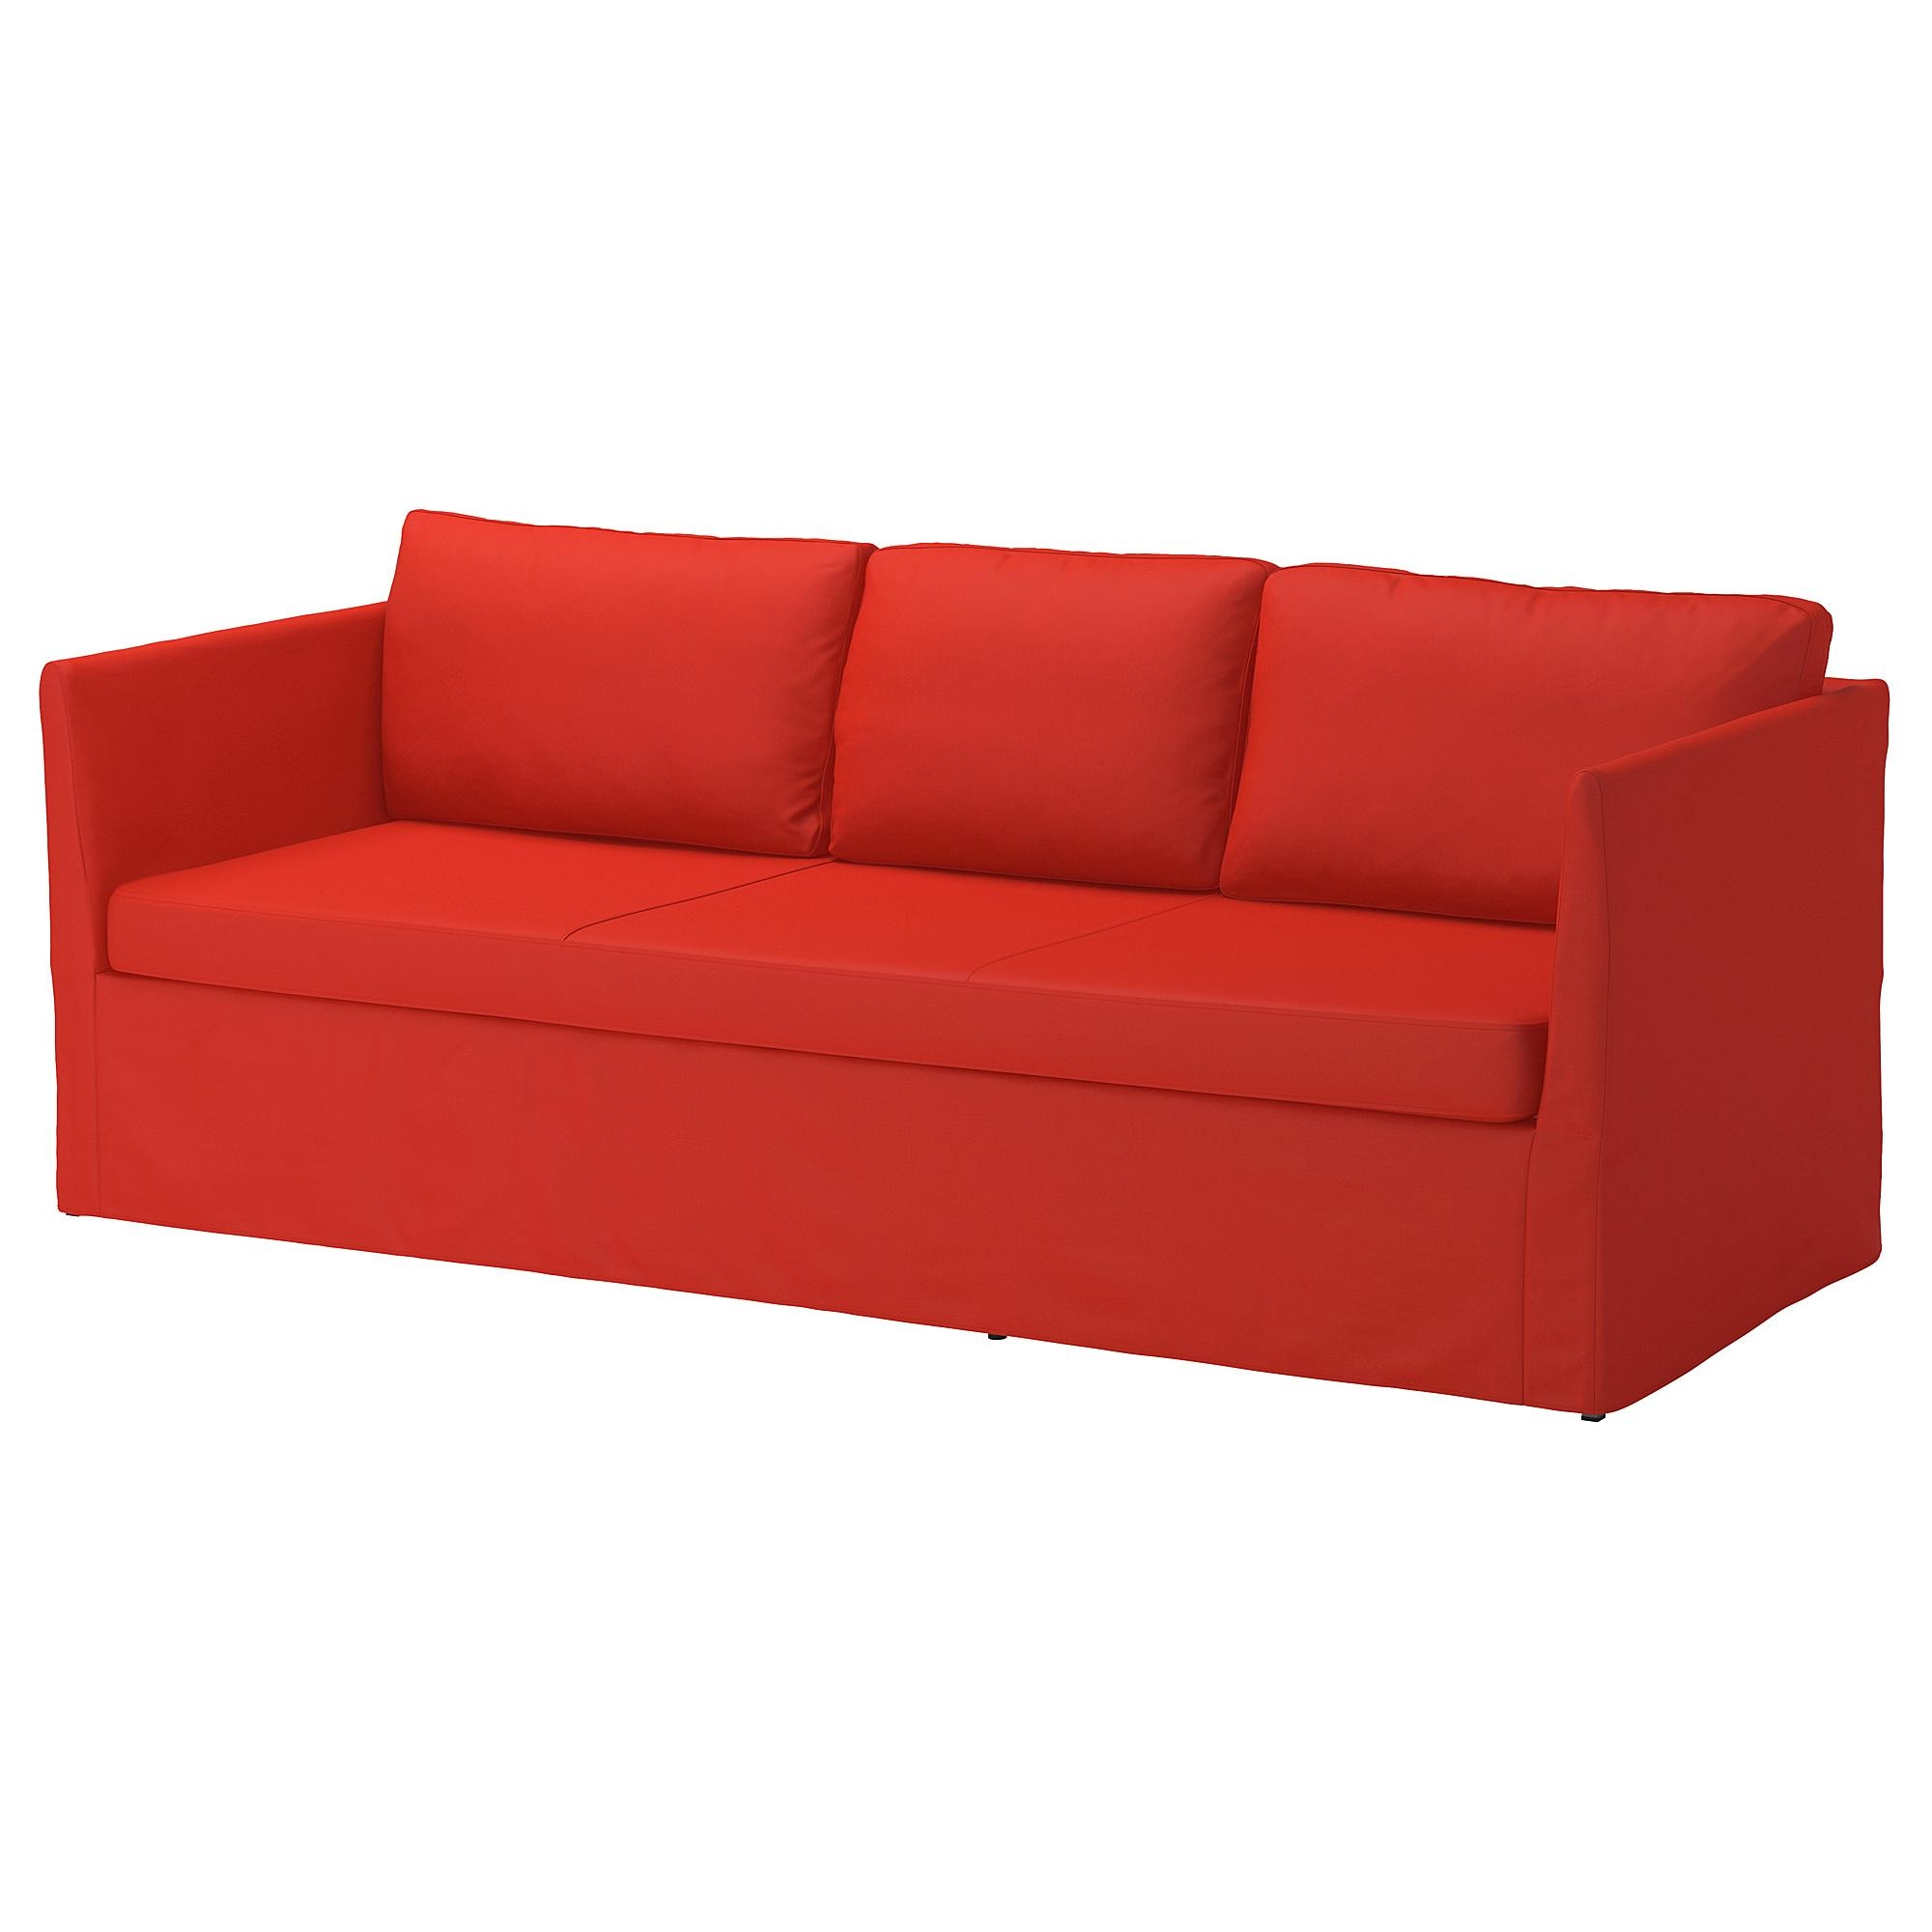 ikea sofa malaysia 2017 set washable covers 20 best orange sofas ideas